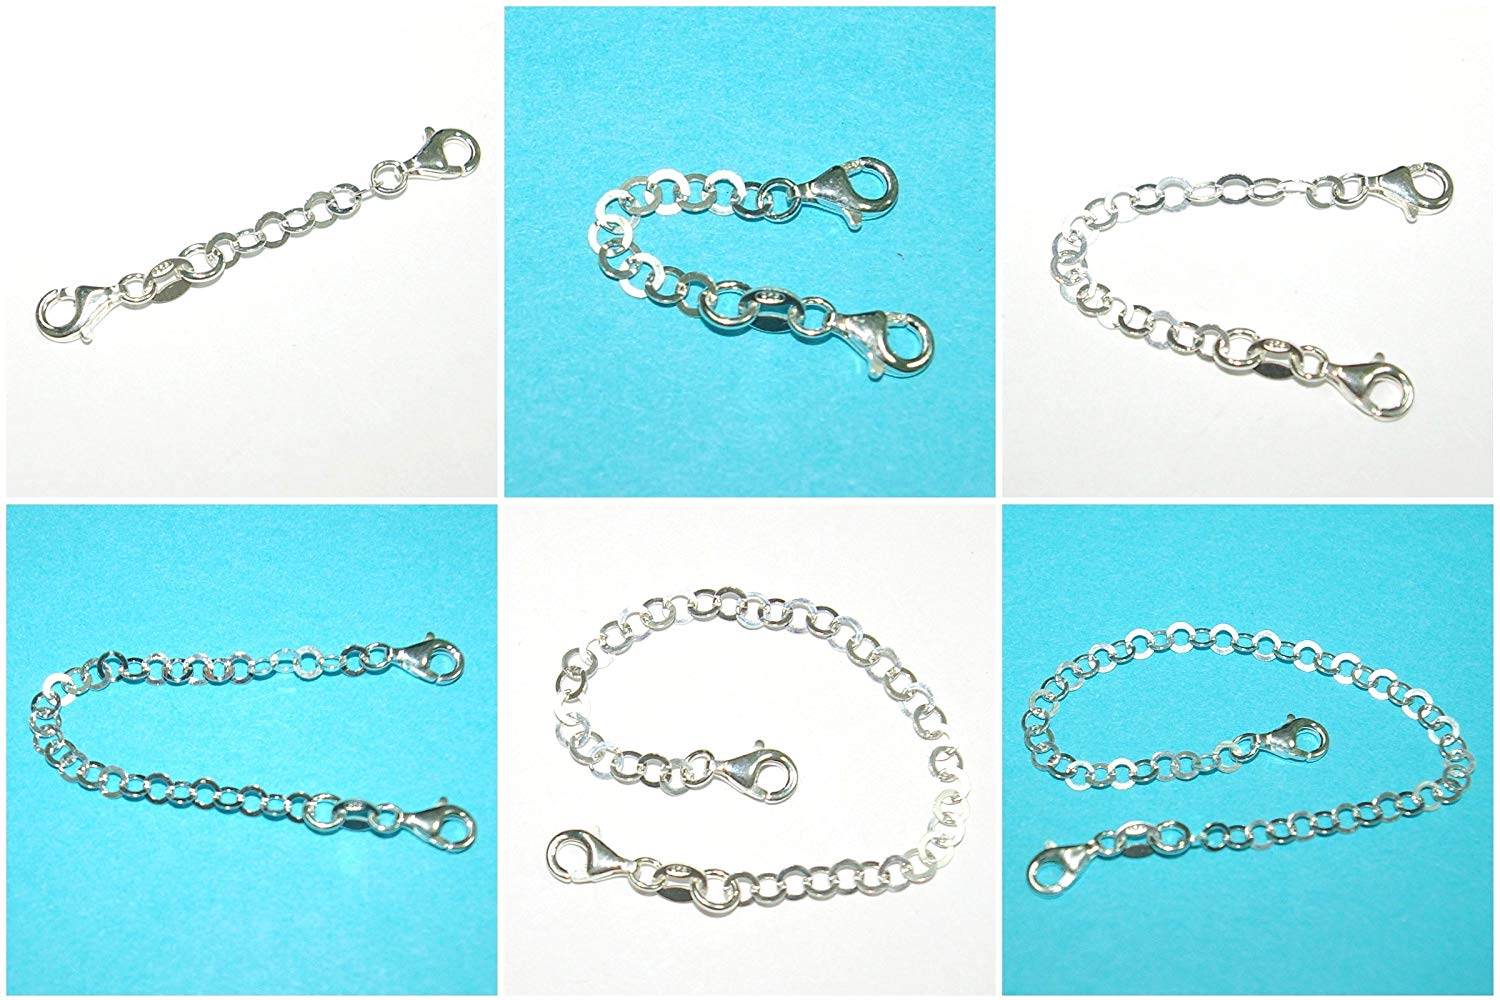 Chain EXTENDER with Two Lobster Claw Clasps Genuine 925 Sterling Silver 4mm Flat Round Chain - Many Lengths - Handmade